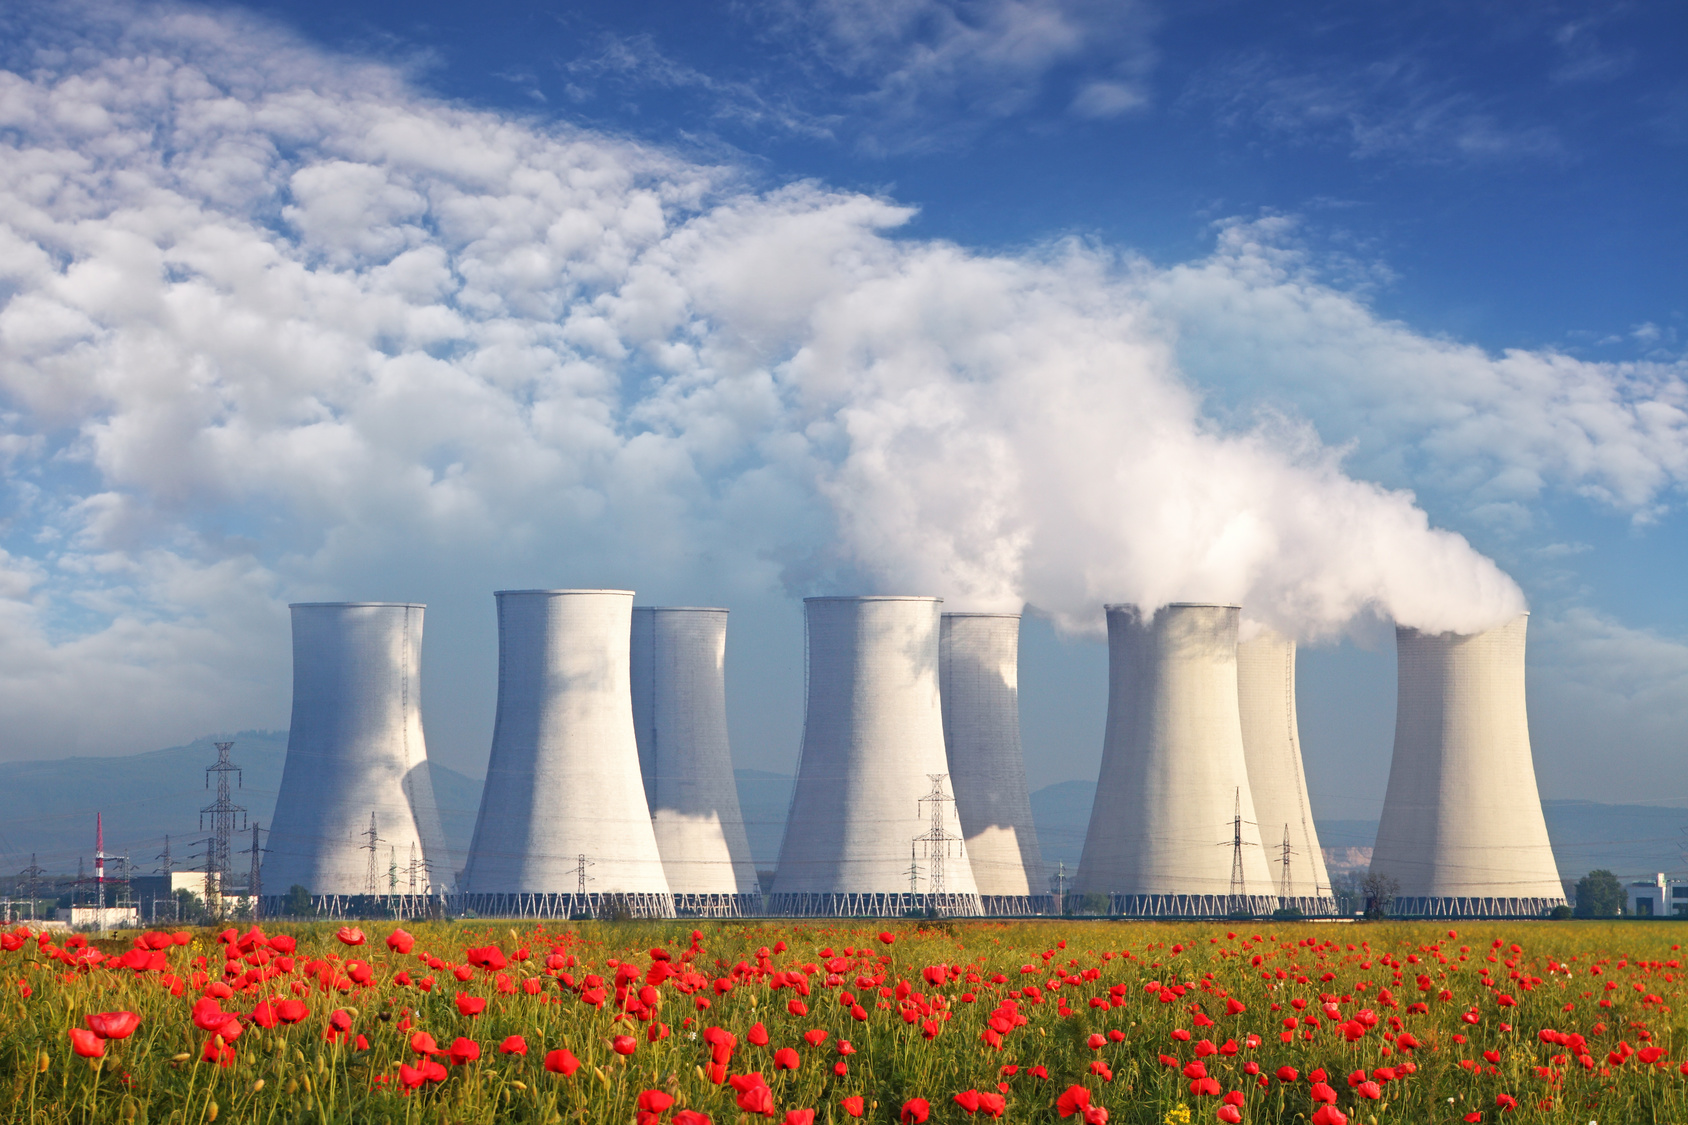 Nuclear power plant with a red field